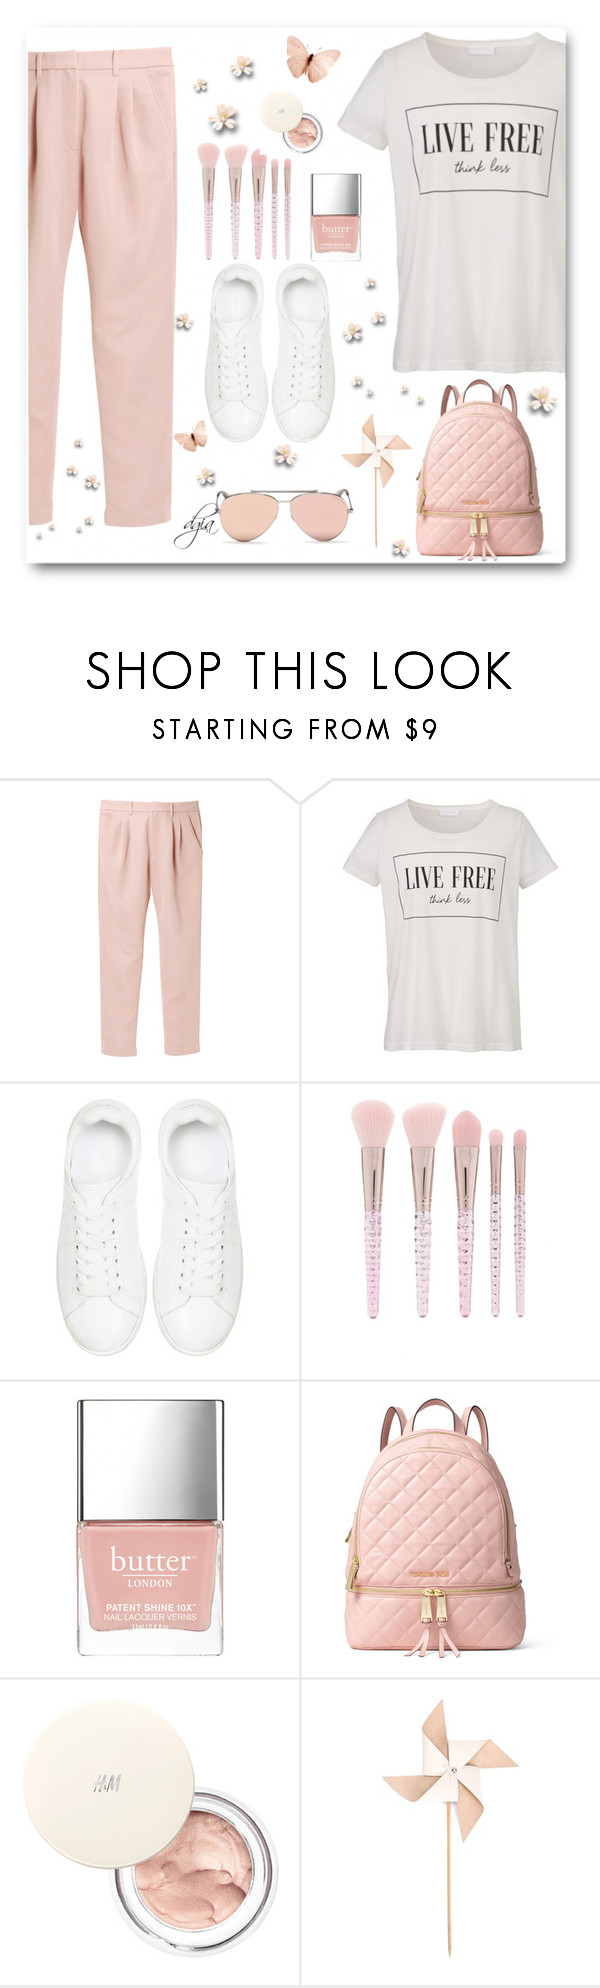 """""""Spring"""" by dgia ❤ liked on Polyvore featuring Uniqlo, Anine Bing, Forever 21, Butter London, MICHAEL Michael Kors, Hender Scheme and Alexander McQueen"""